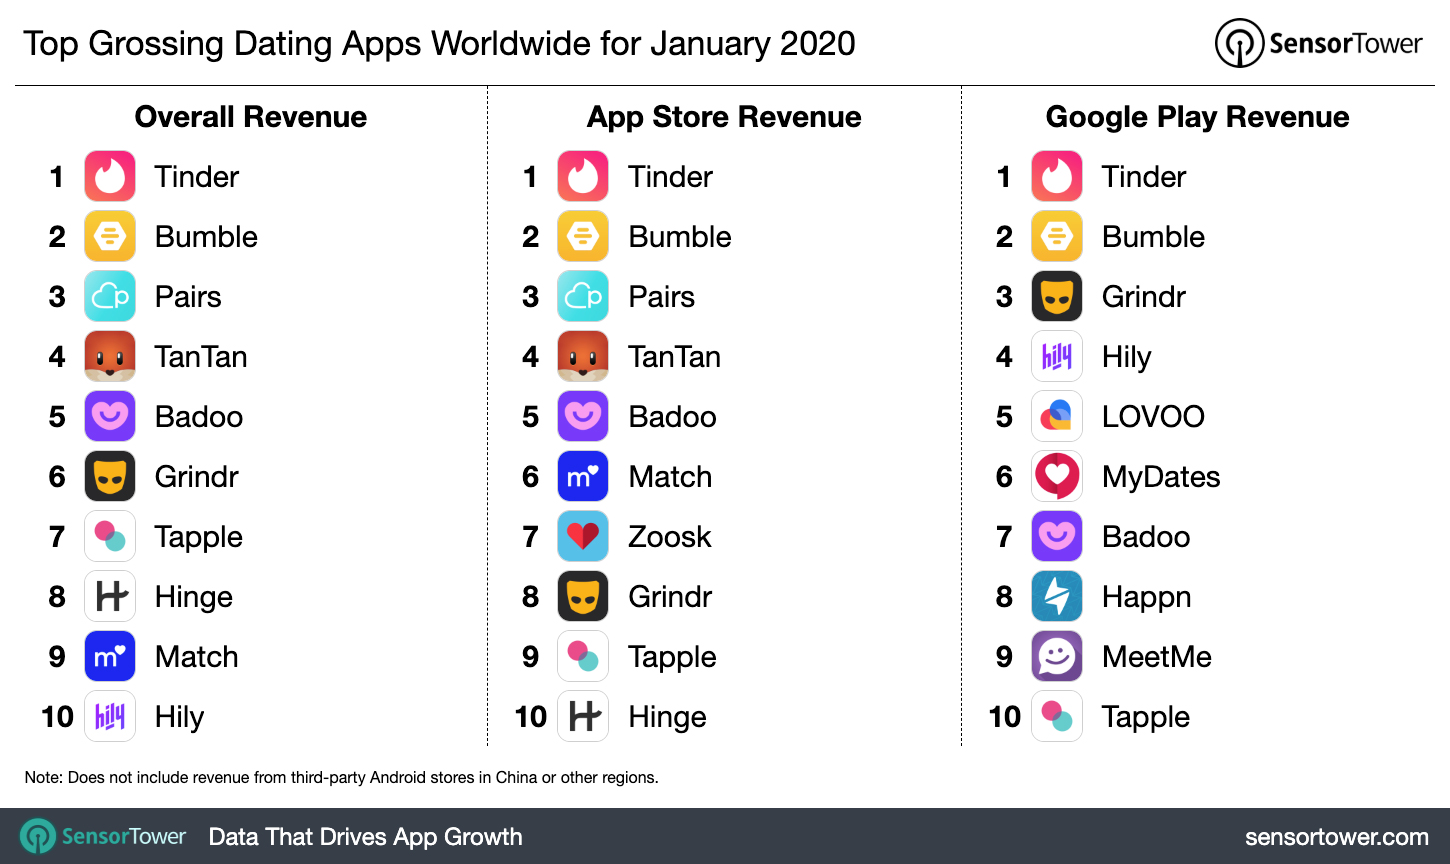 Sensor Tower Publishes Highest Grossing Dating Apps For January 2020